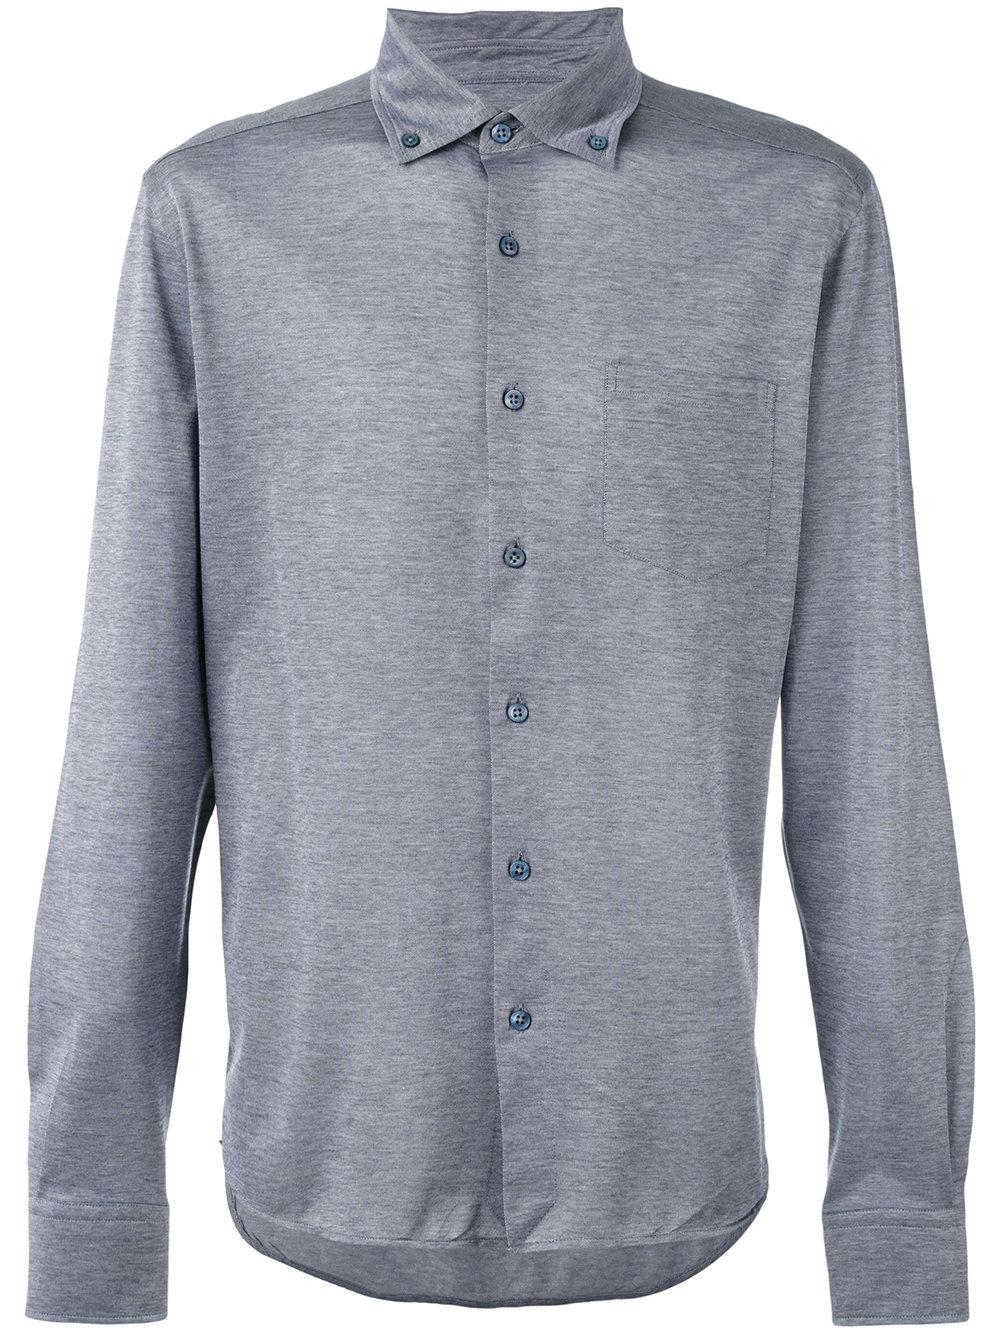 Lyst ermenegildo zegna button down long sleeved shirt in for Grey button down shirt